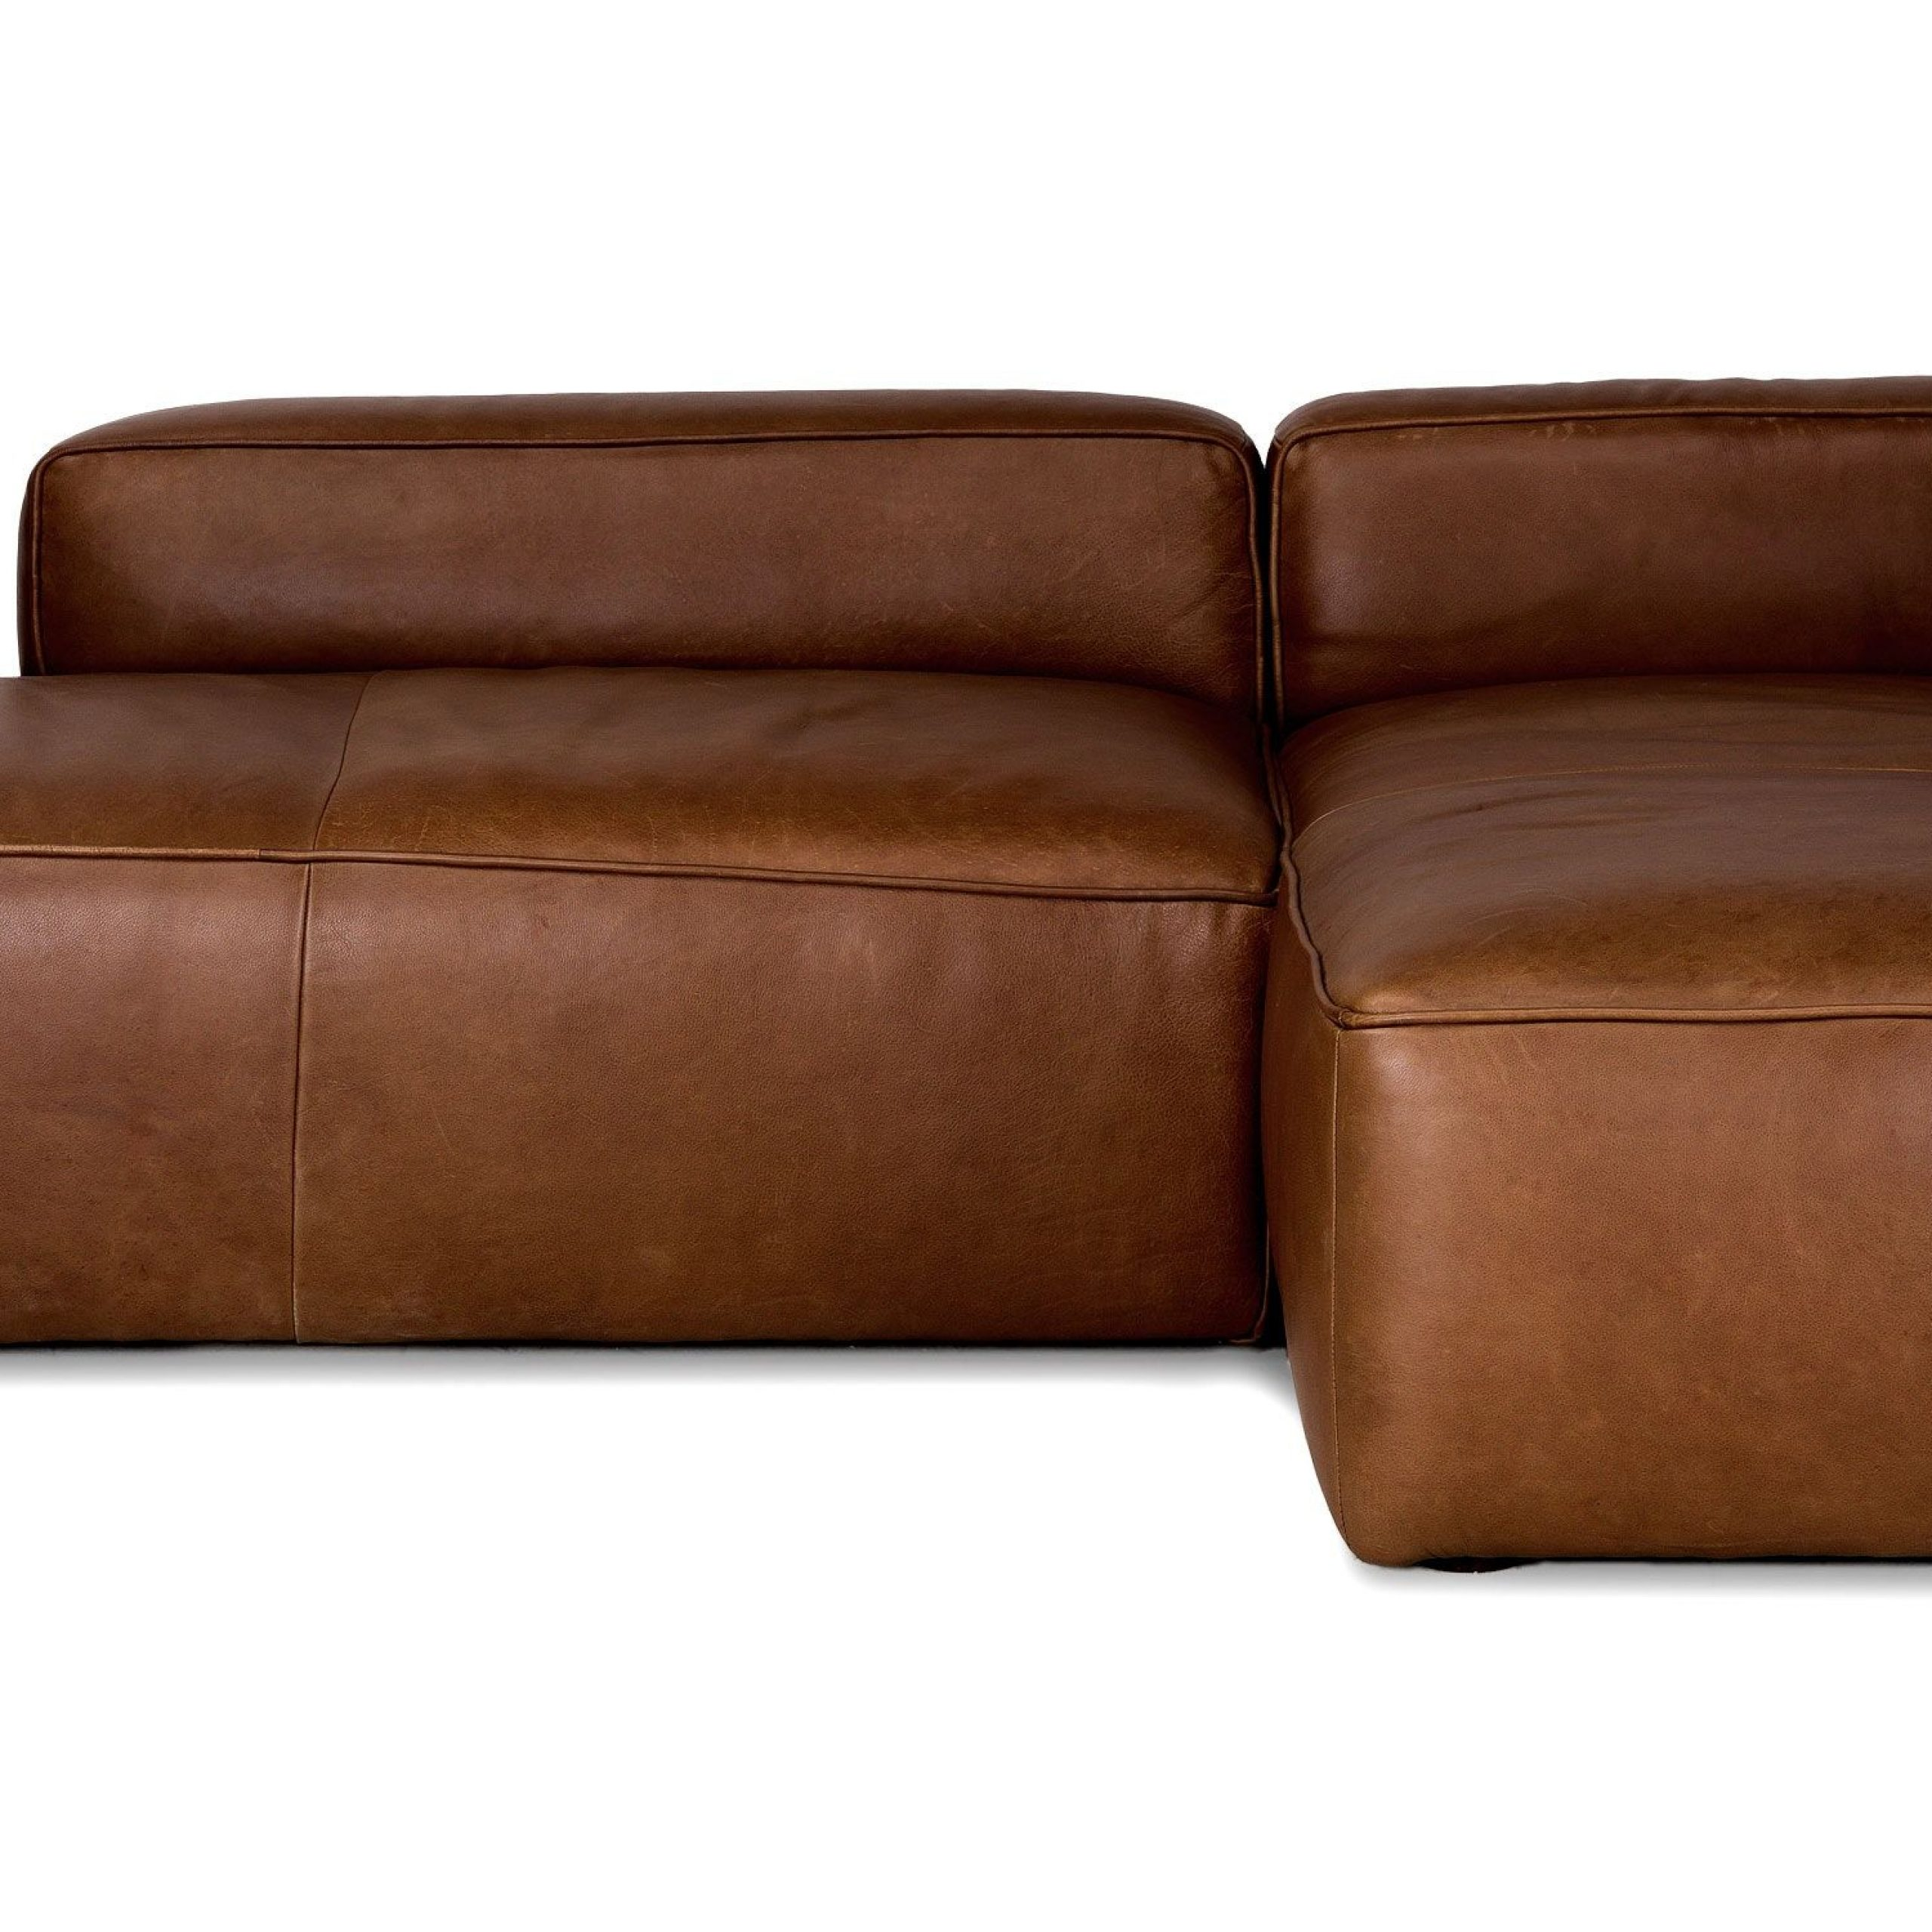 Mello Taos Brown Right Sectional | Mid Century Modern Sofa Within Florence Mid Century Modern Right Sectional Sofas (View 15 of 15)